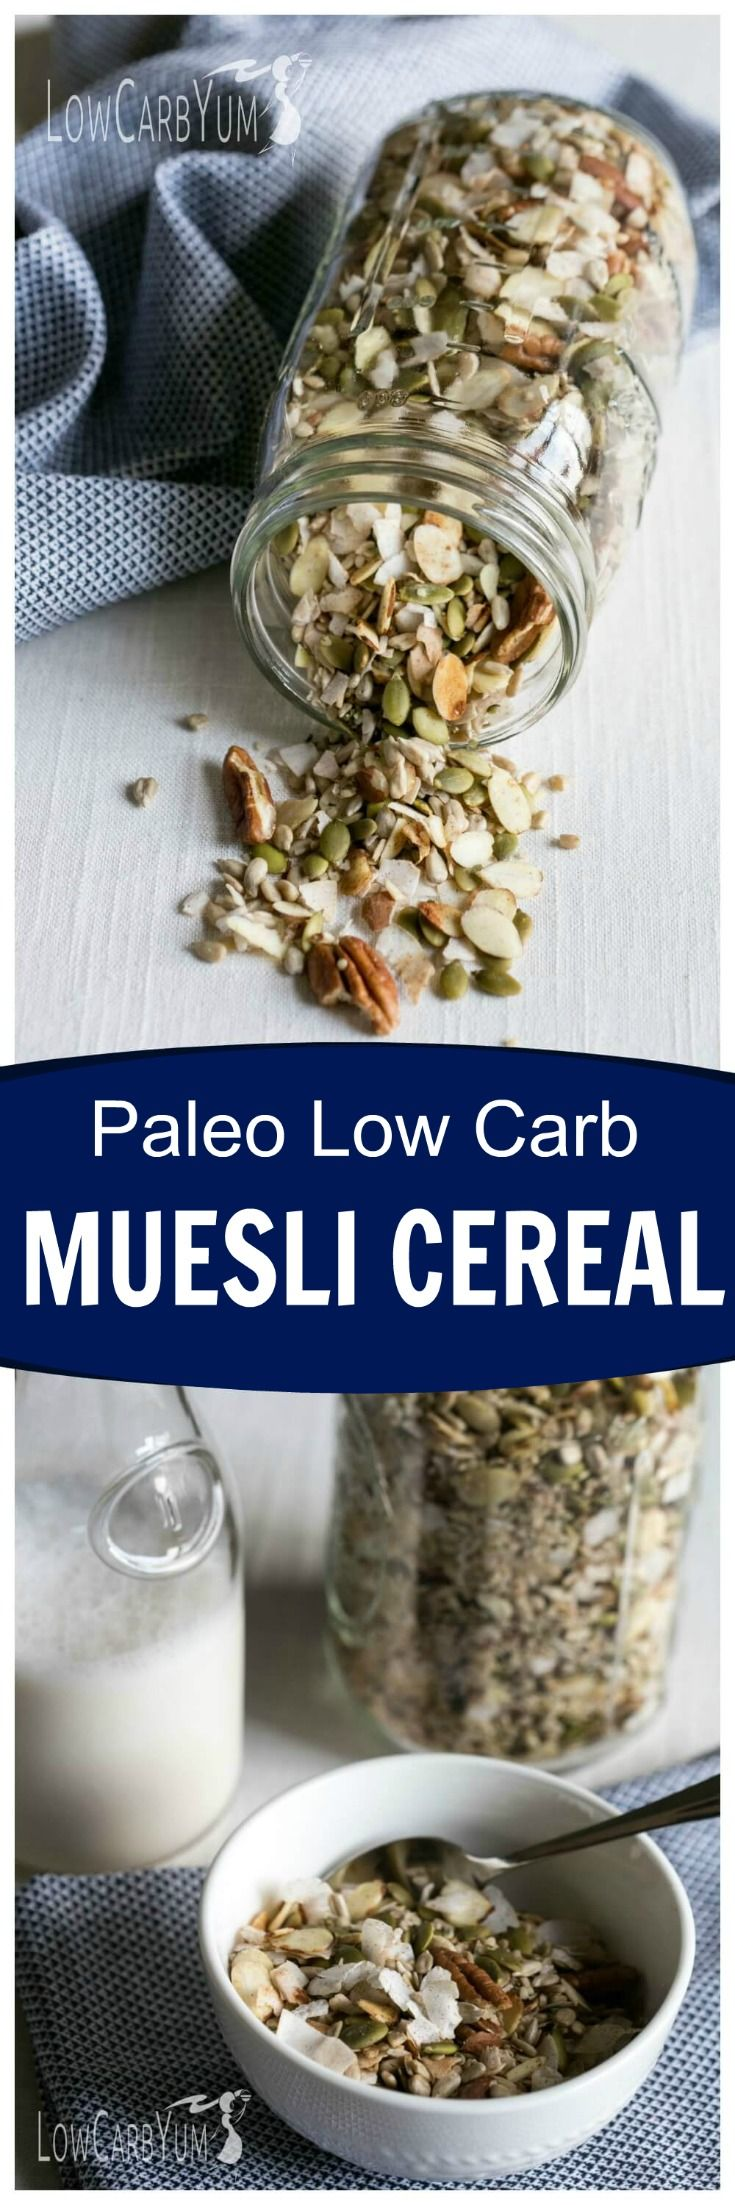 If you're following a gluten free paleo diet, you'll love this muesli low carb cereal. It's loaded with whole food ingredients without sugar added! | LowCarbYum.com (Paleo Diet Recipes)